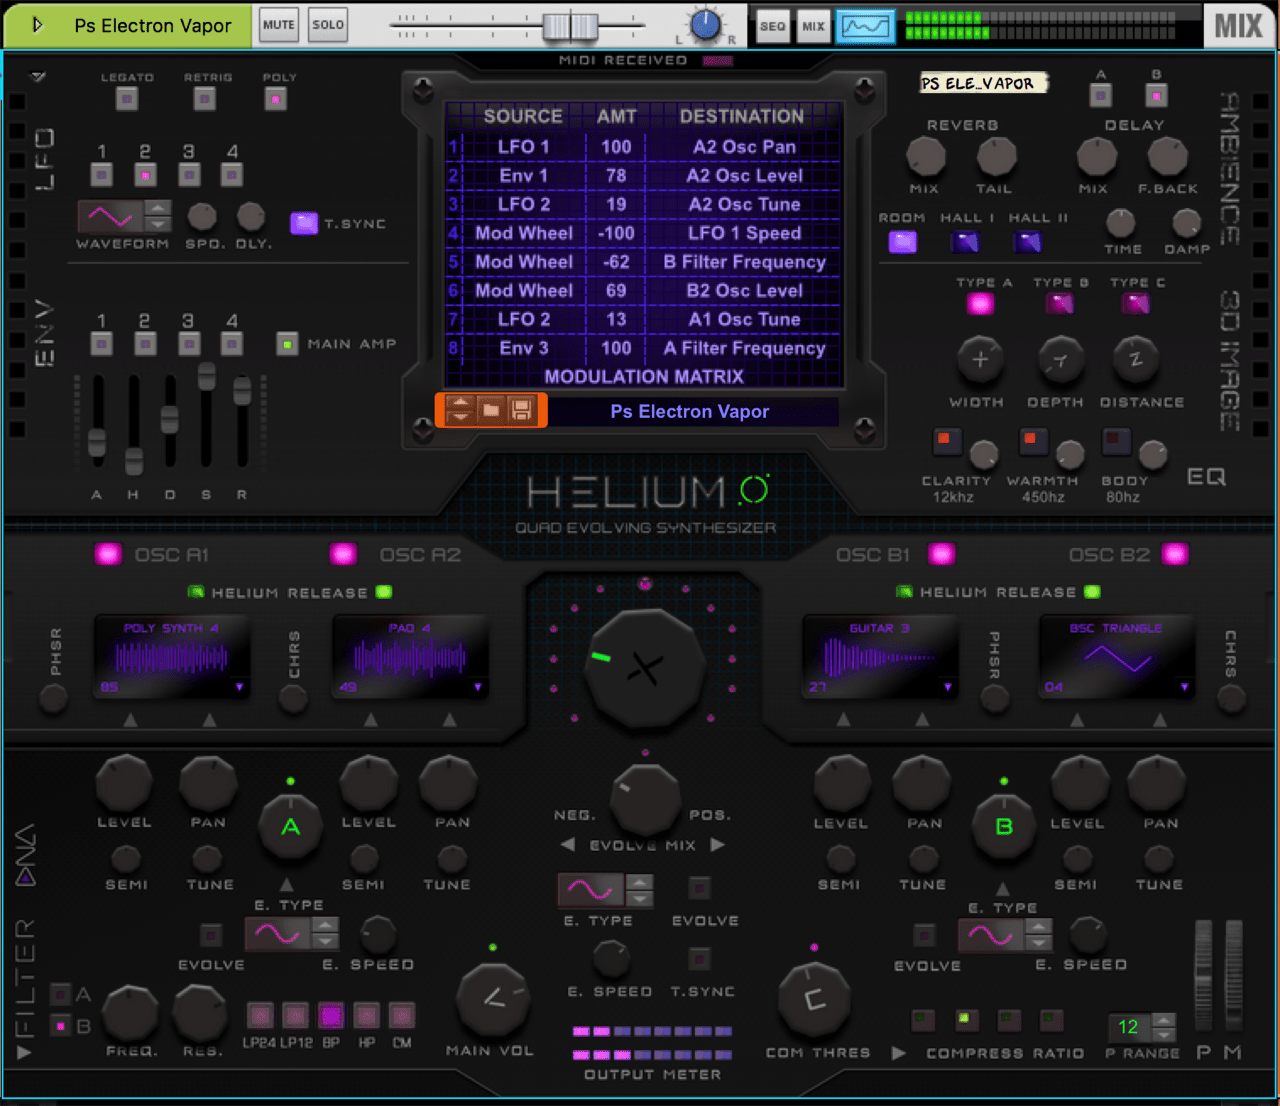 Helium | Quad Evolving Synth | Shop | Propellerhead